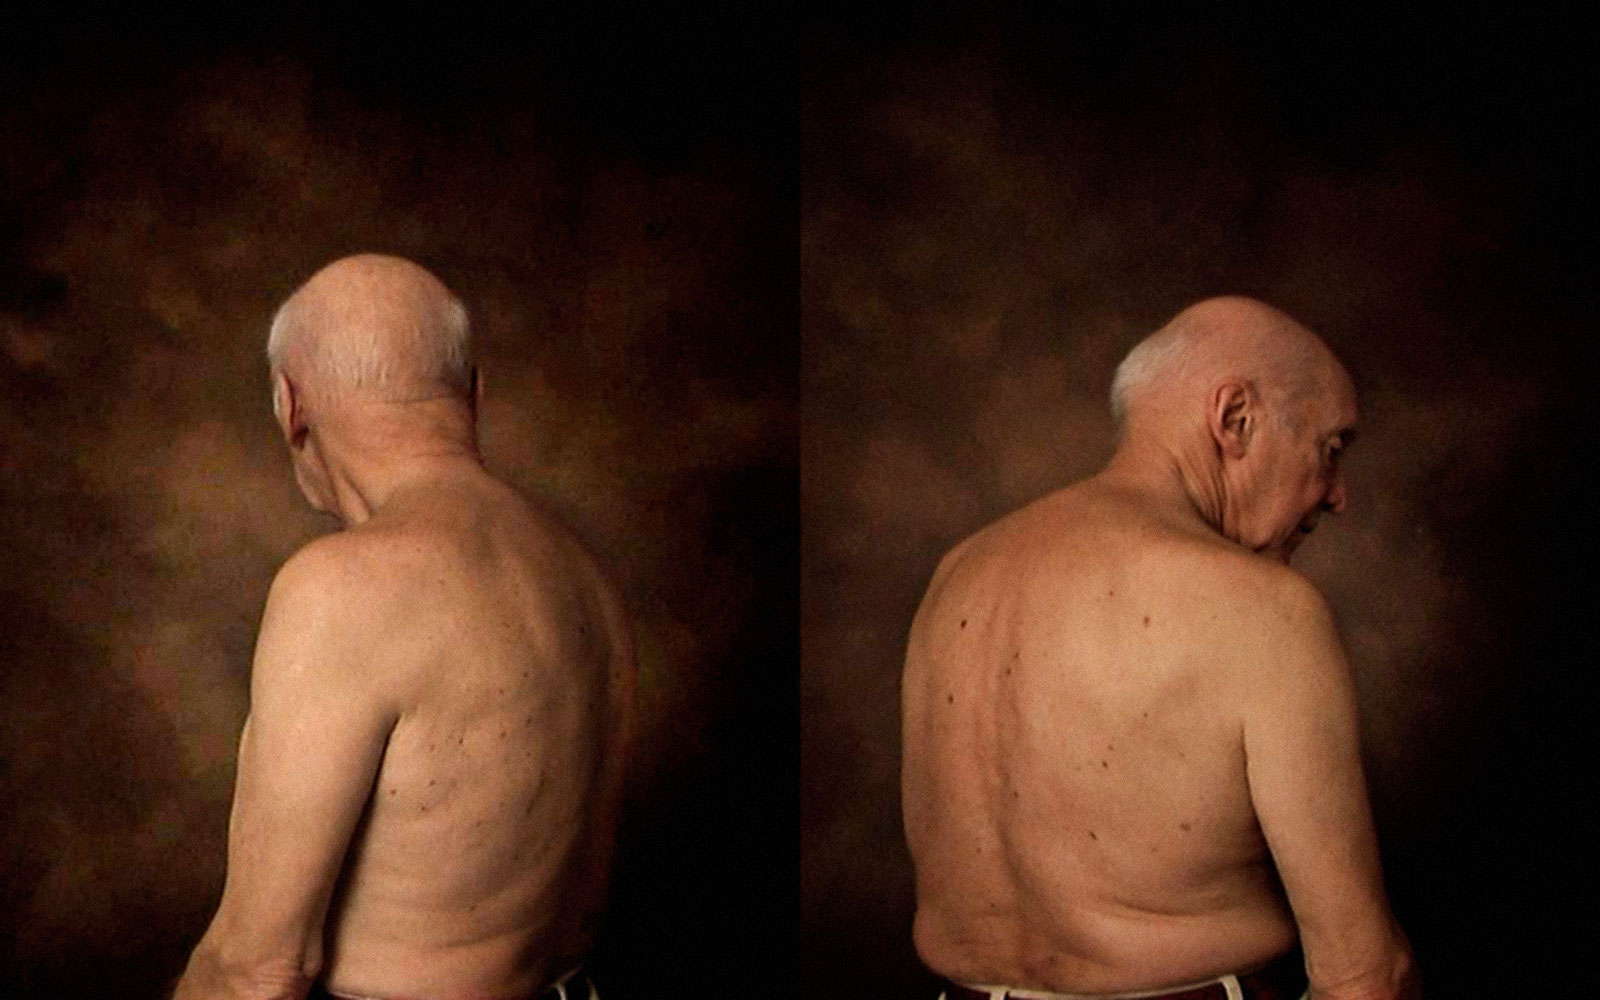 Still from Fadersporträtt/ Portrait of a father, 2008-2014, video, 8 min 42 sec, The Photo Studio Video Archive 2008